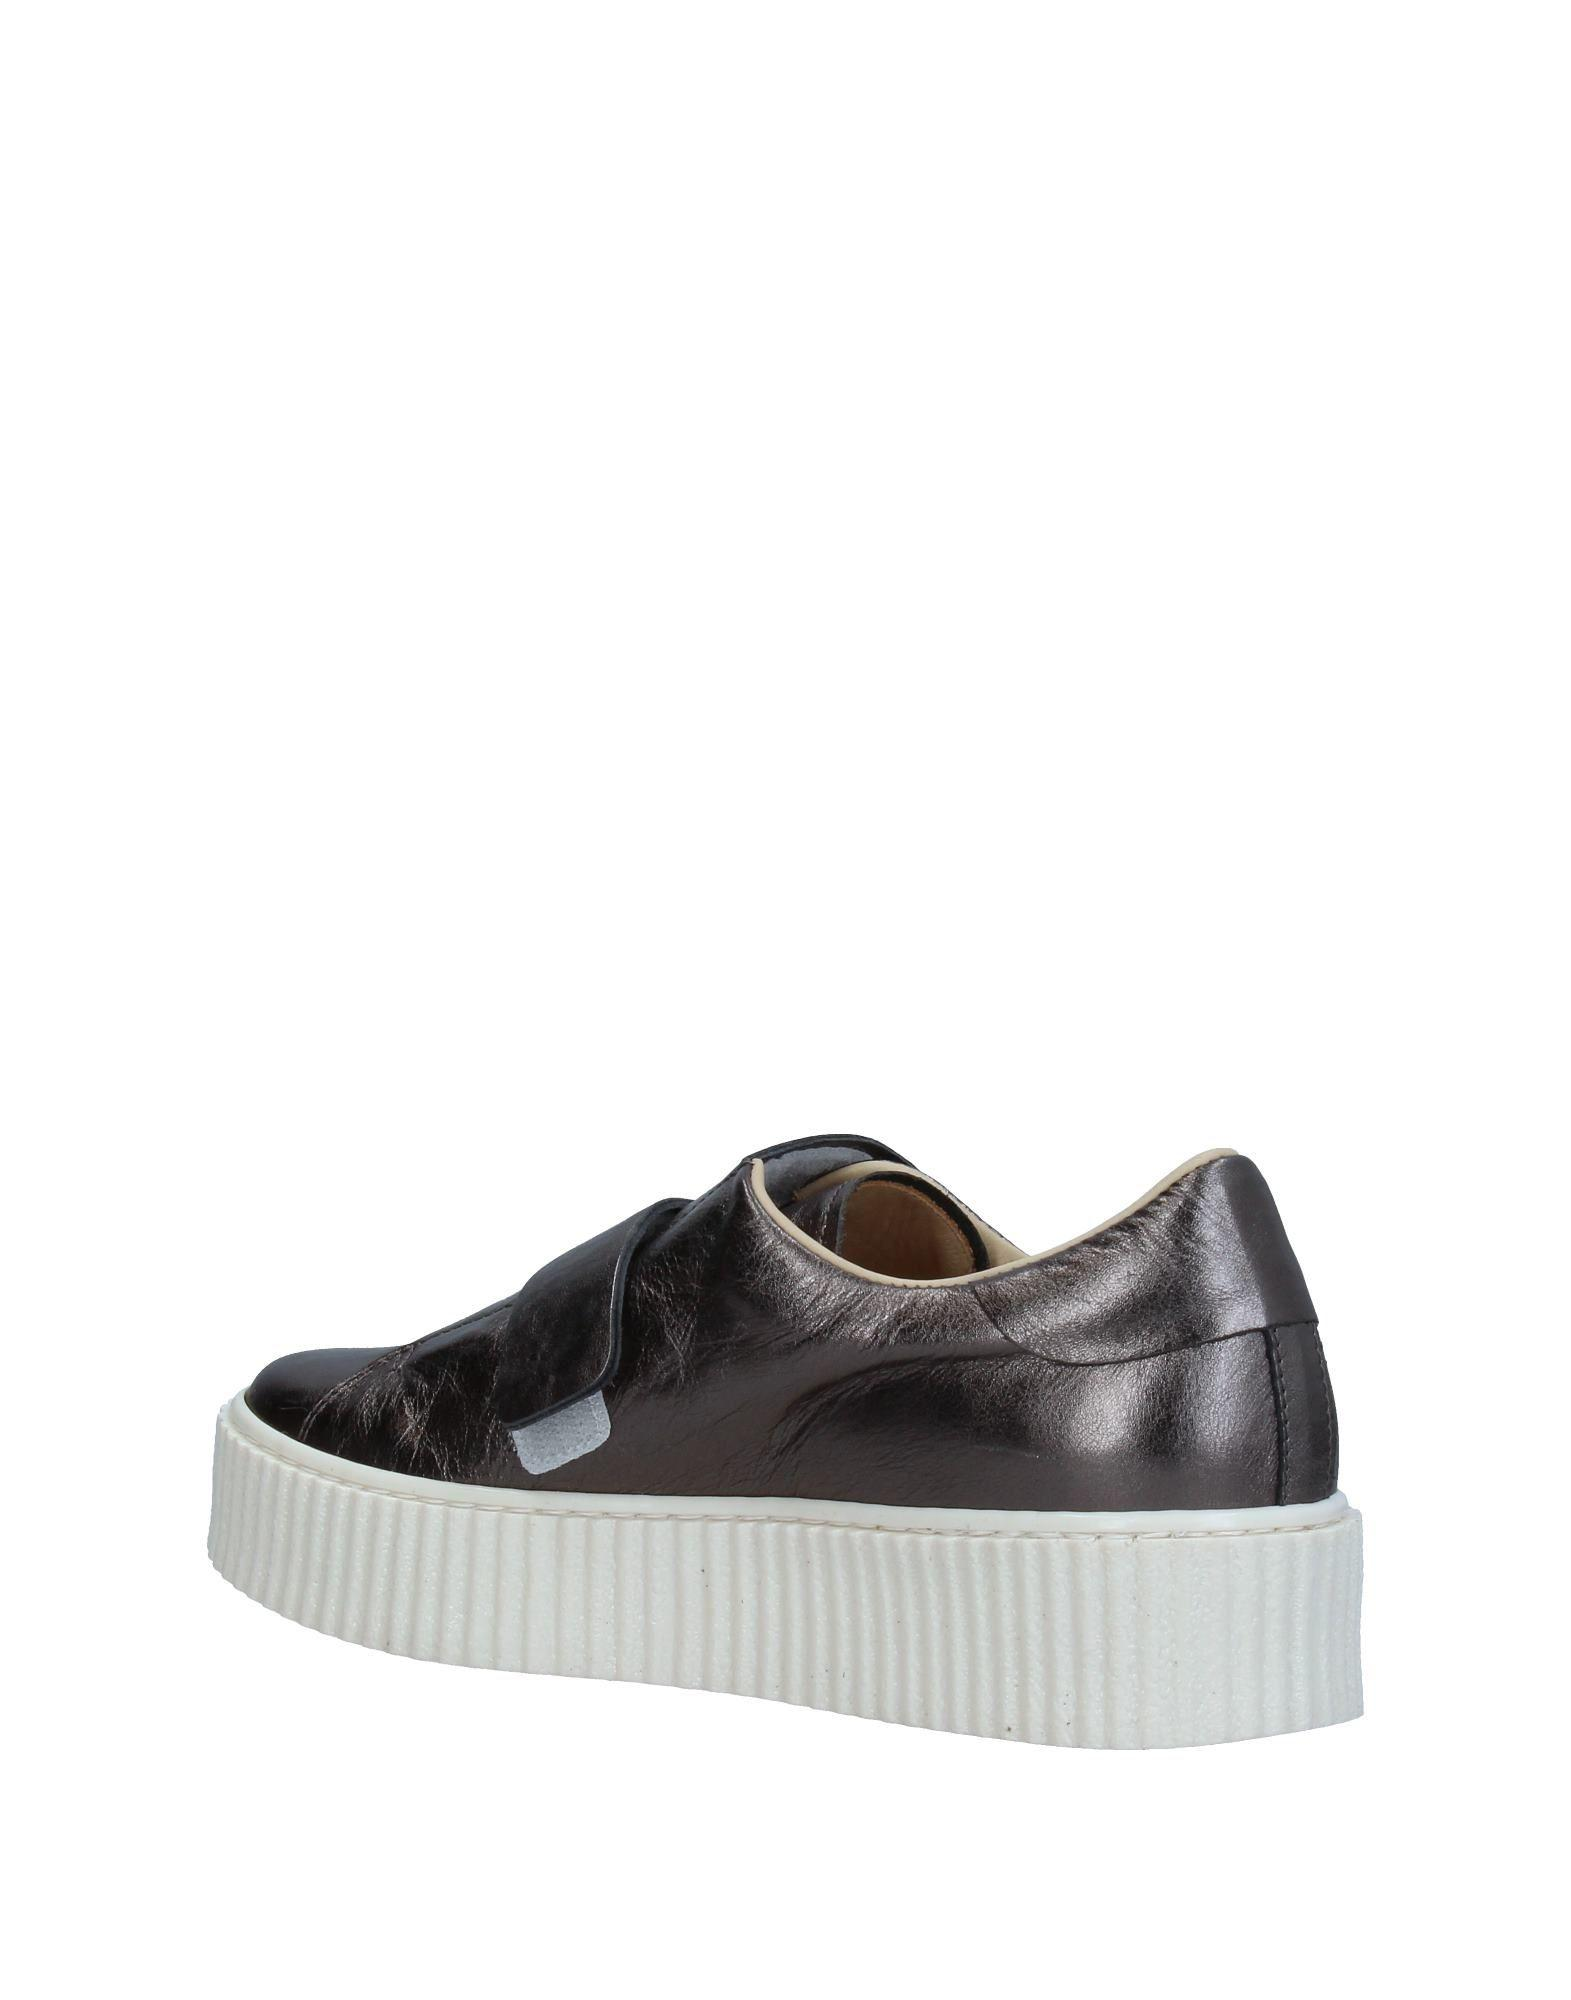 Chiarini Bologna Leather Low-tops & Sneakers in Steel Grey (Grey)